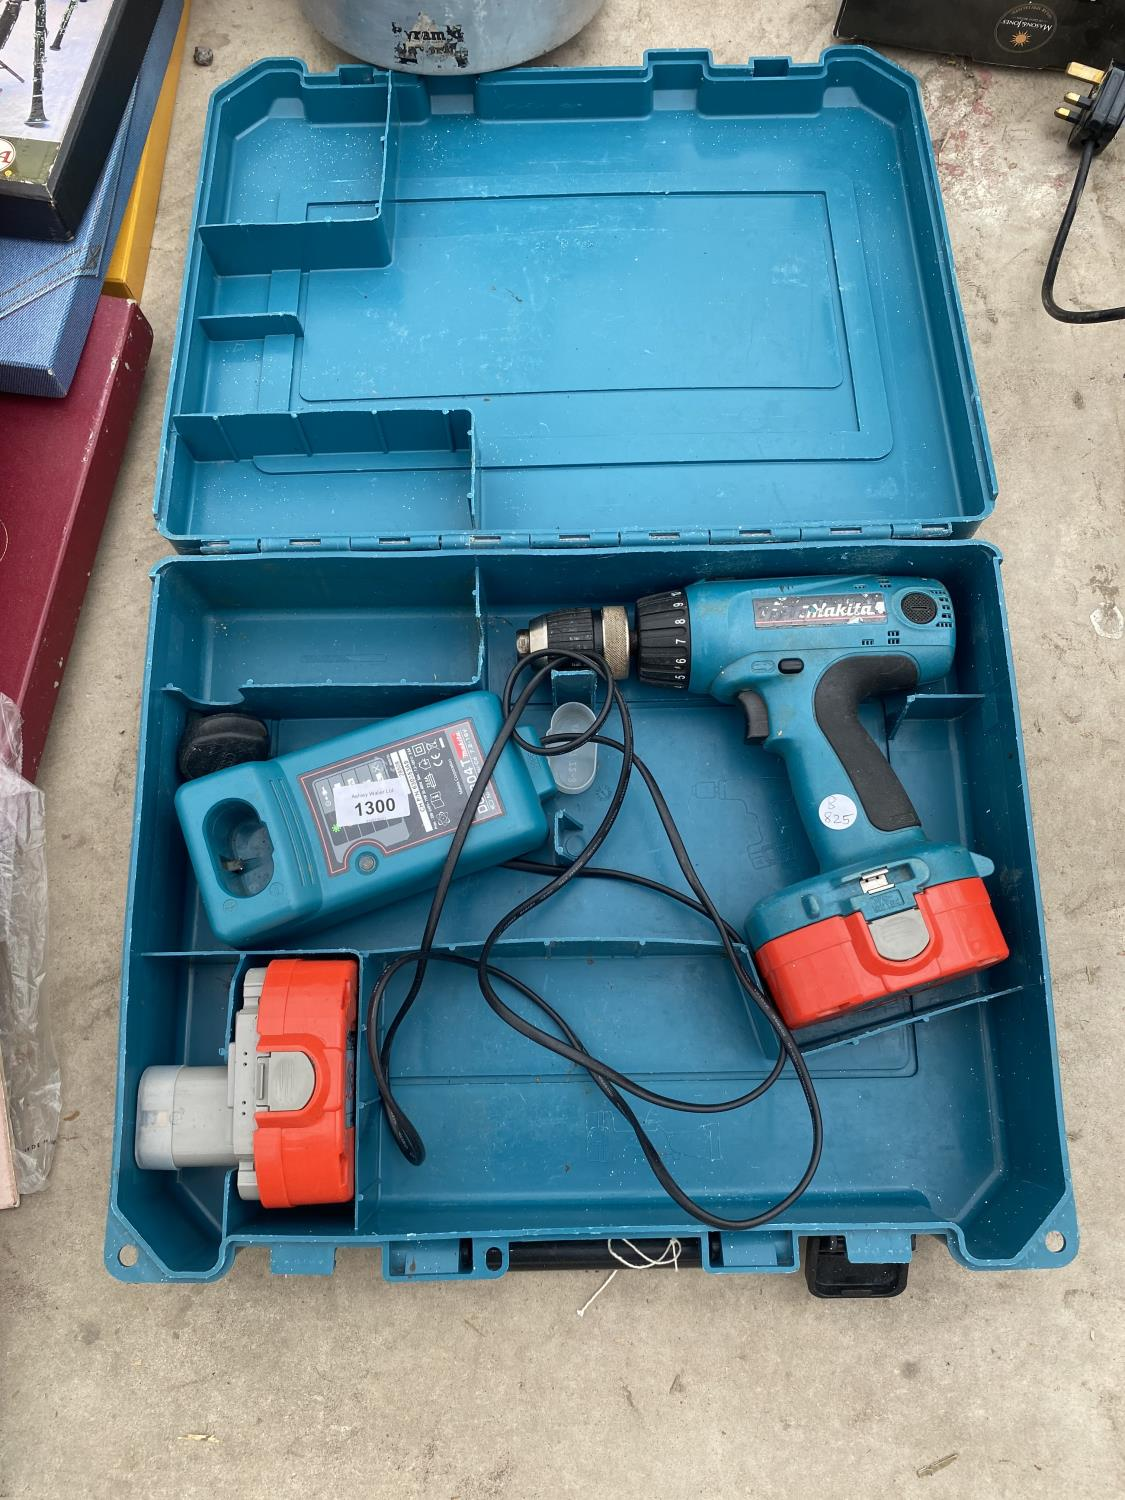 A MAKITA BATTERY DRILL WITH SPARE BATTERY AND CHARGER